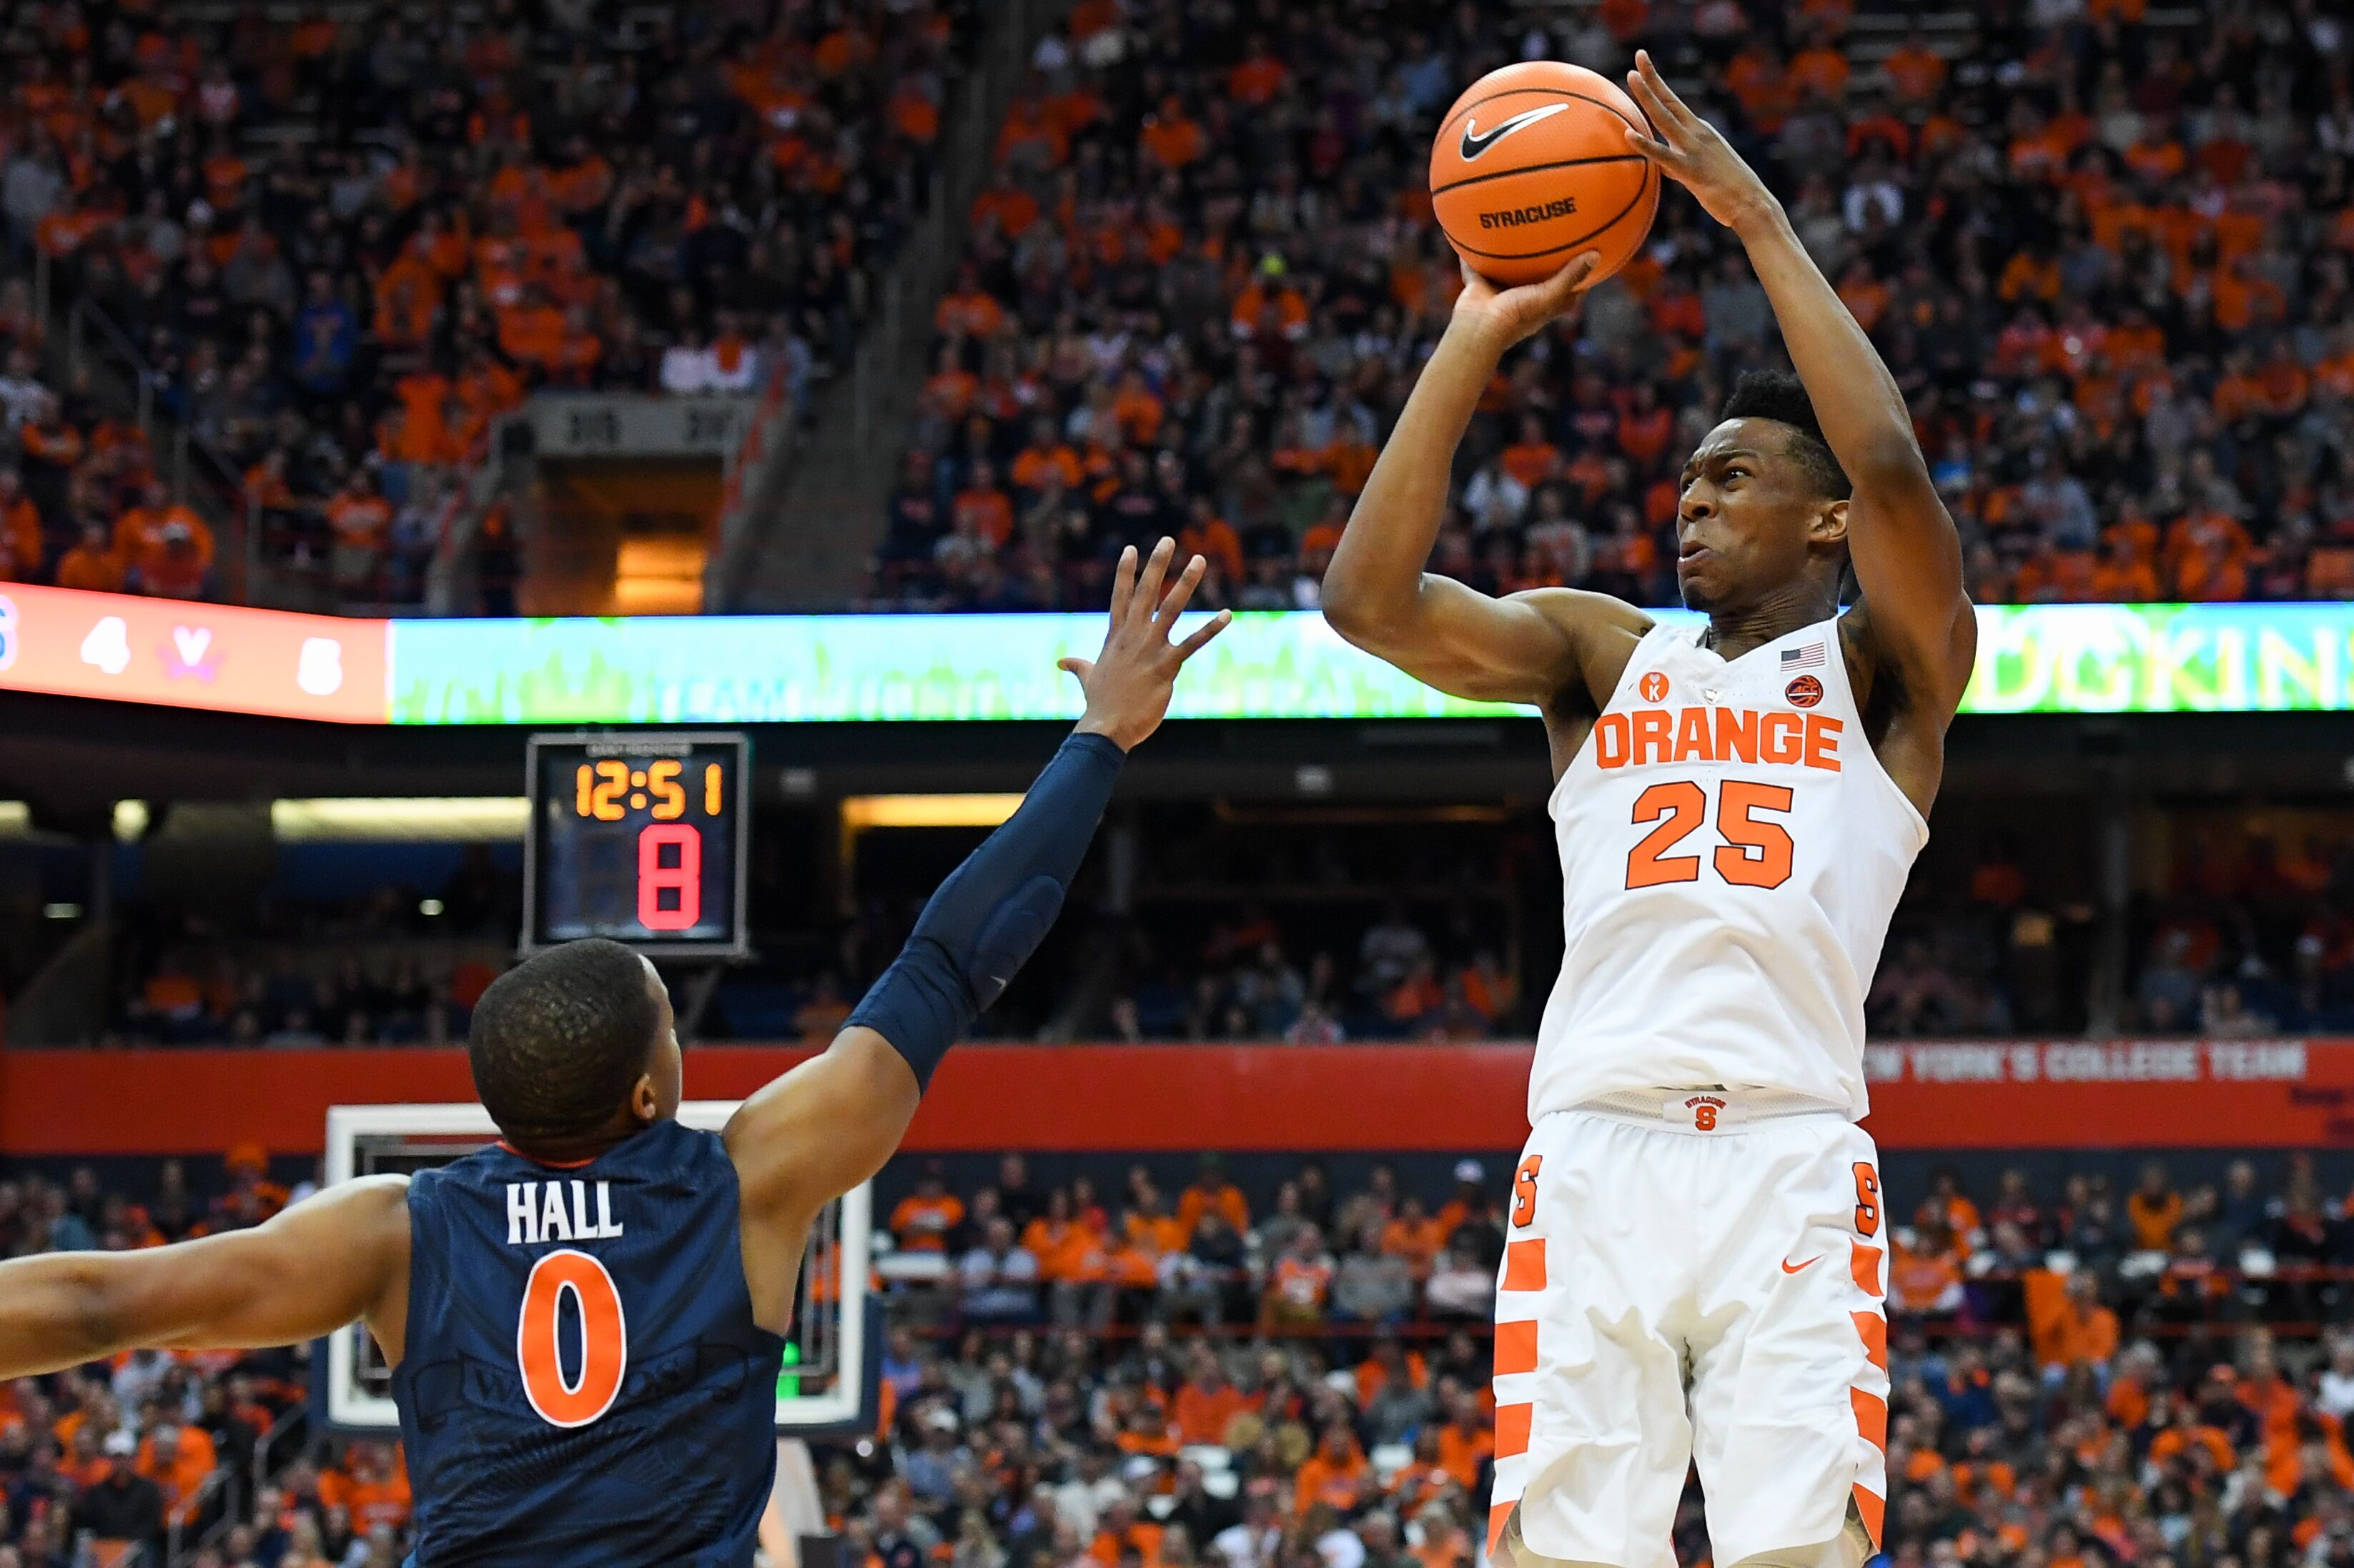 913913180-virginia-v-syracuse.jpg